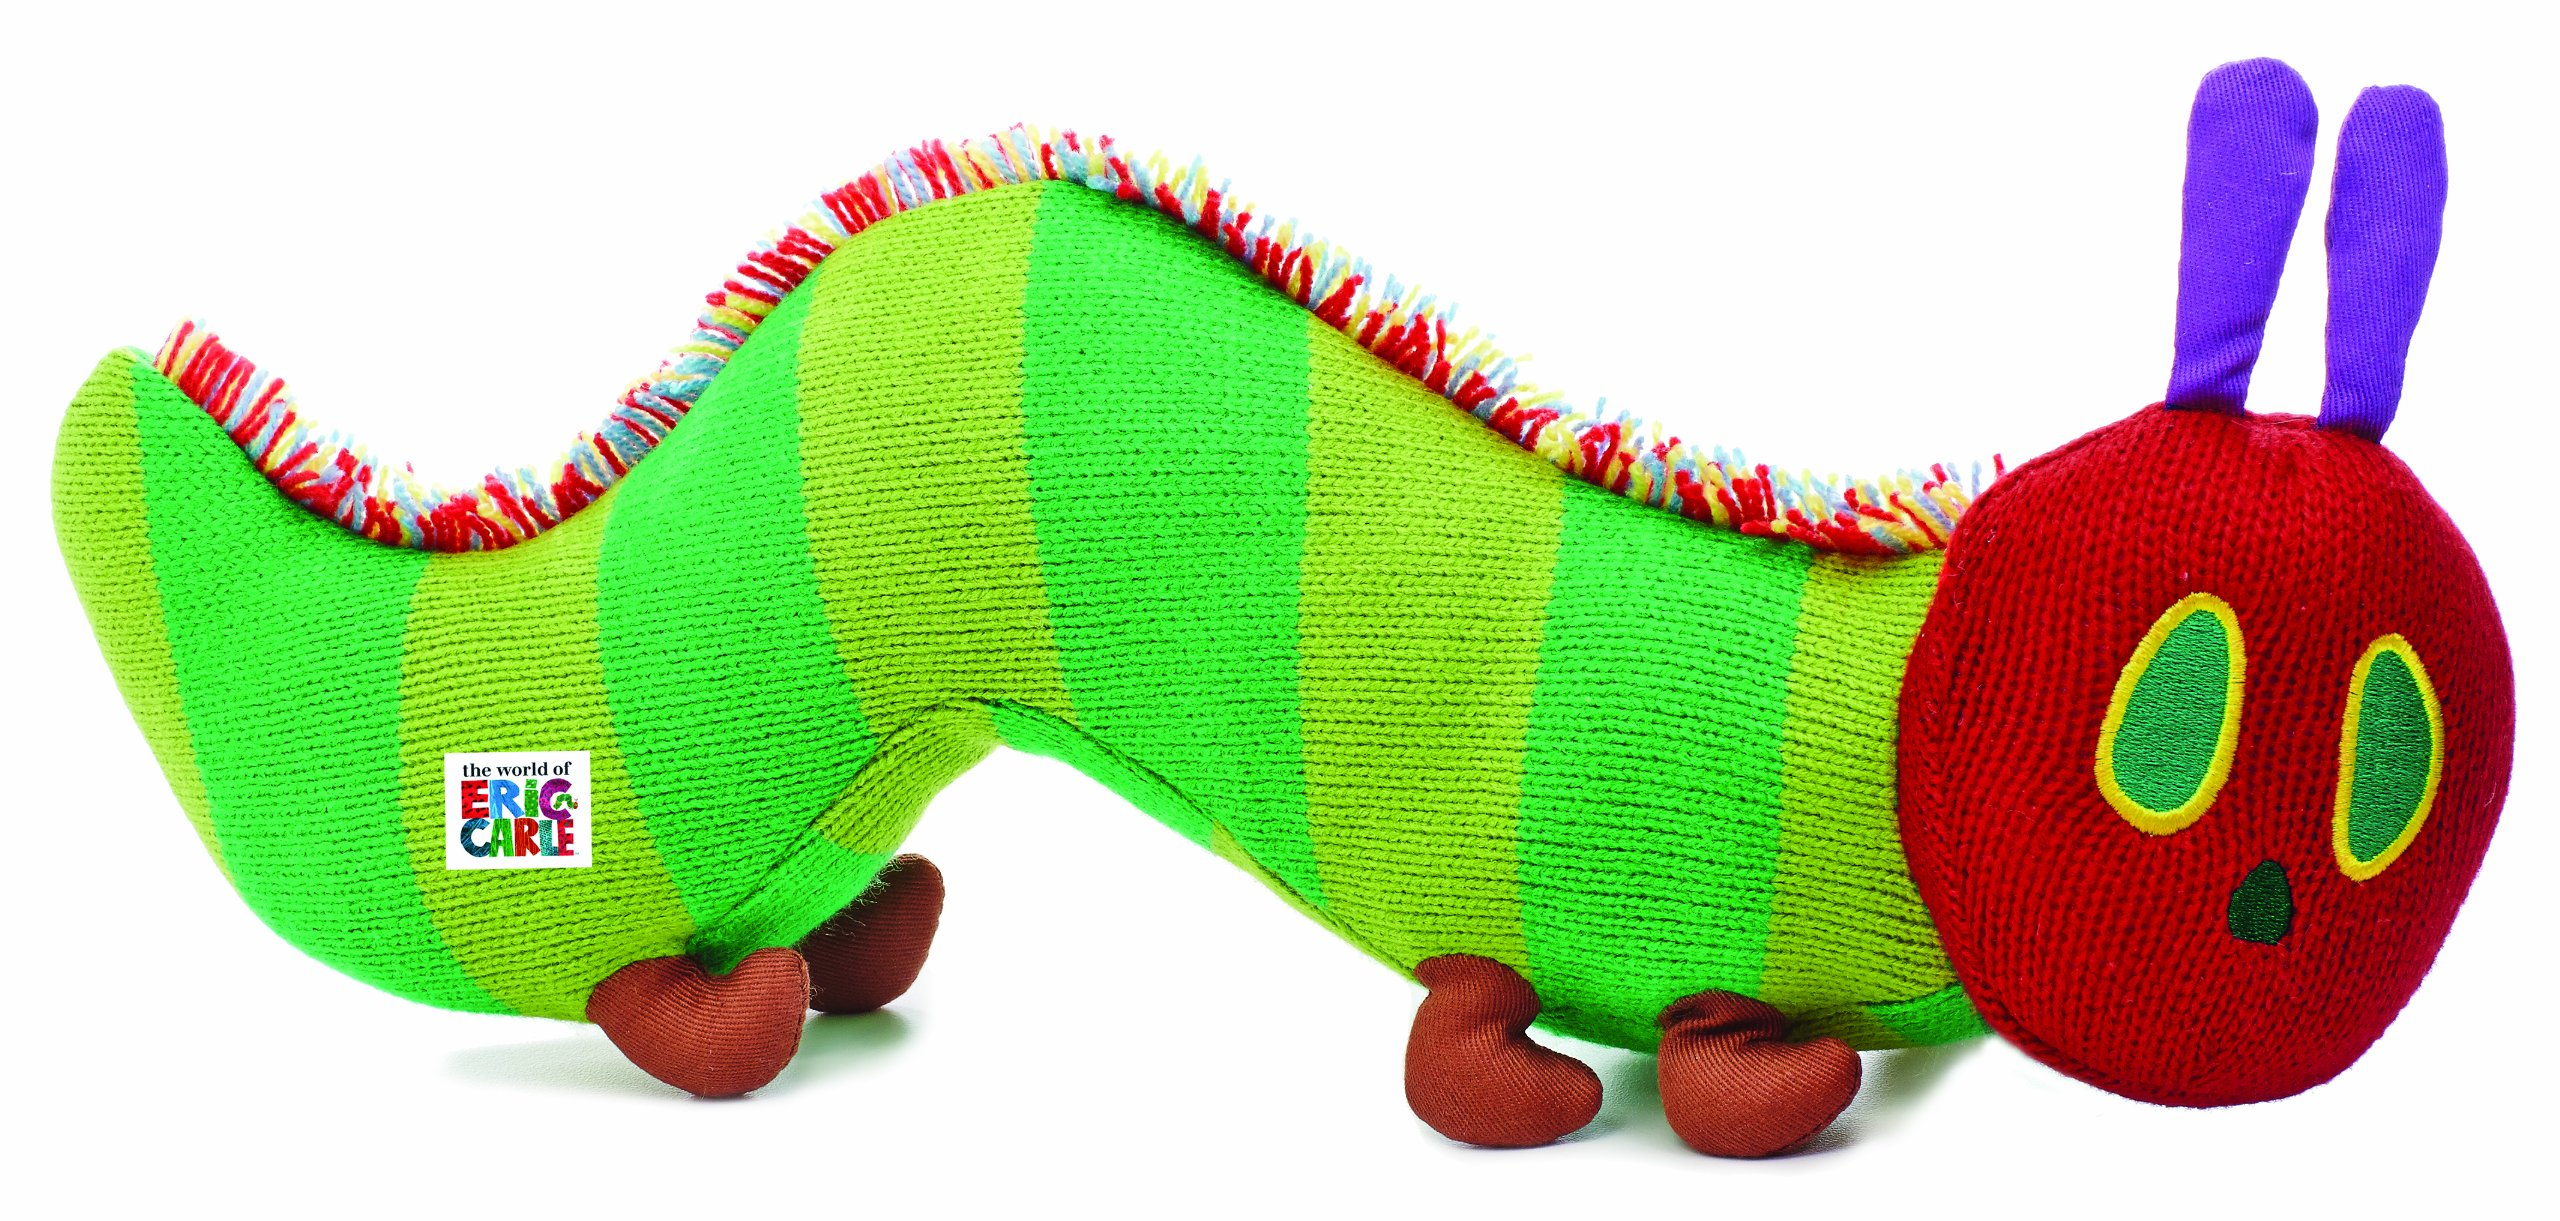 Knitting Pattern For Very Hungry Caterpillar Toy : Other Soft Toys - World of Eric Carle The Very Hungry Caterpillar Knit Bean B...